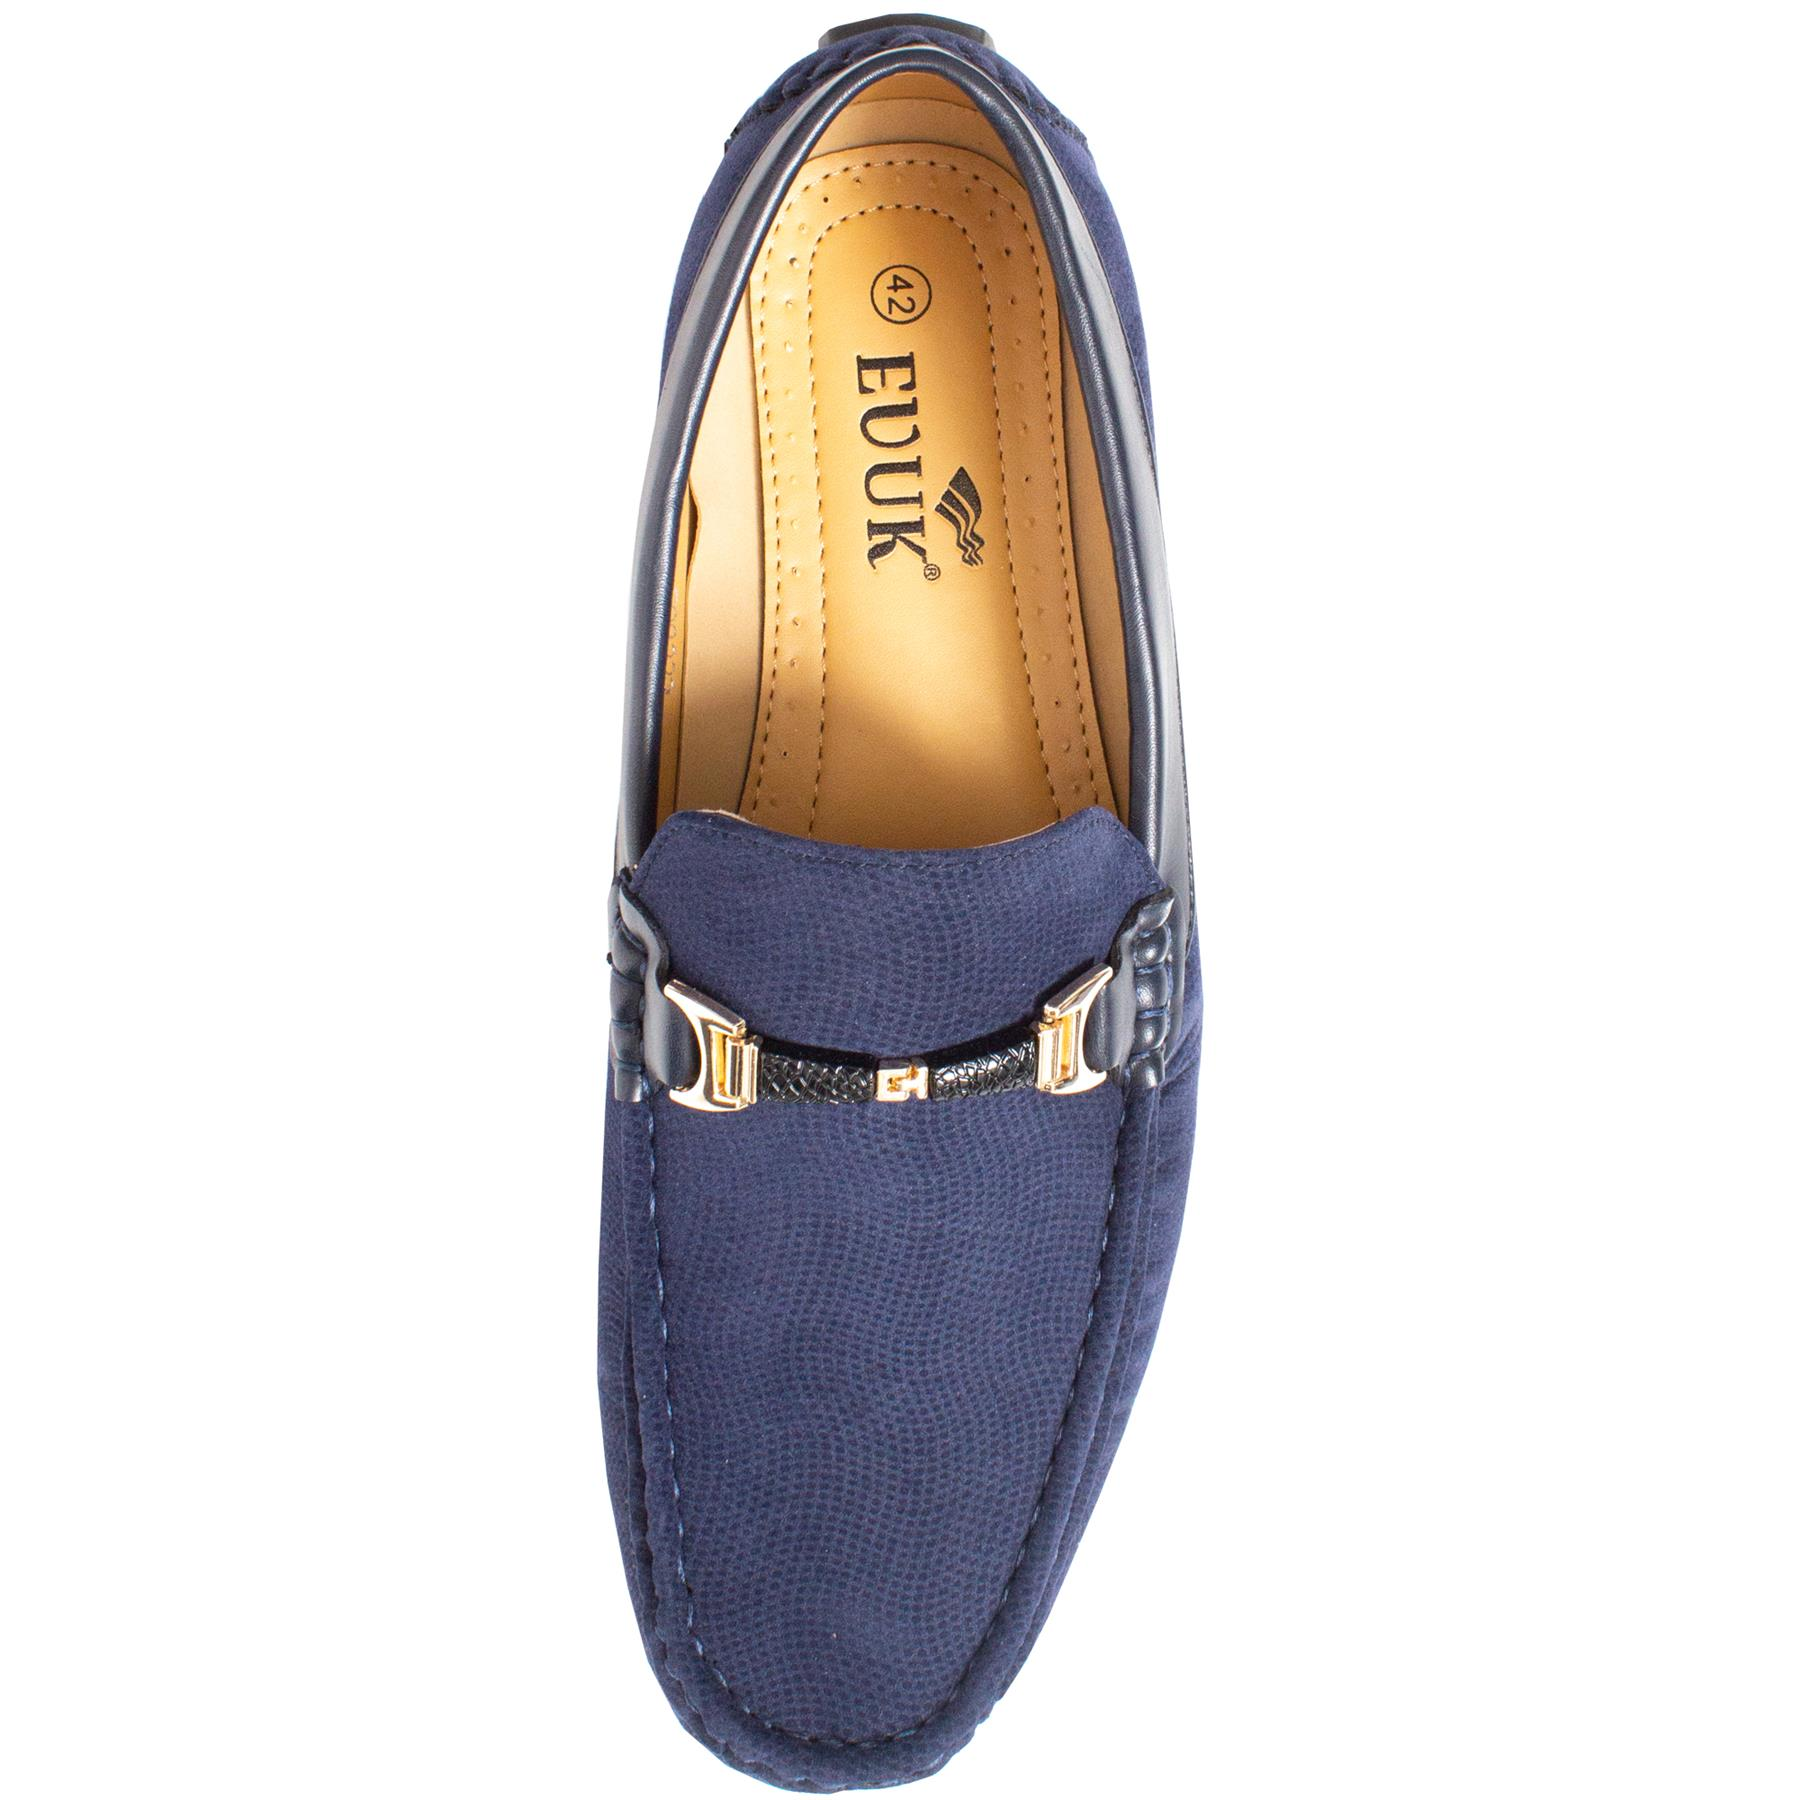 Mens-Slip-Ons-Shoes-Boat-Deck-Driving-Smart-Buckle-Moccasins-Suede-Look-Loafers thumbnail 47